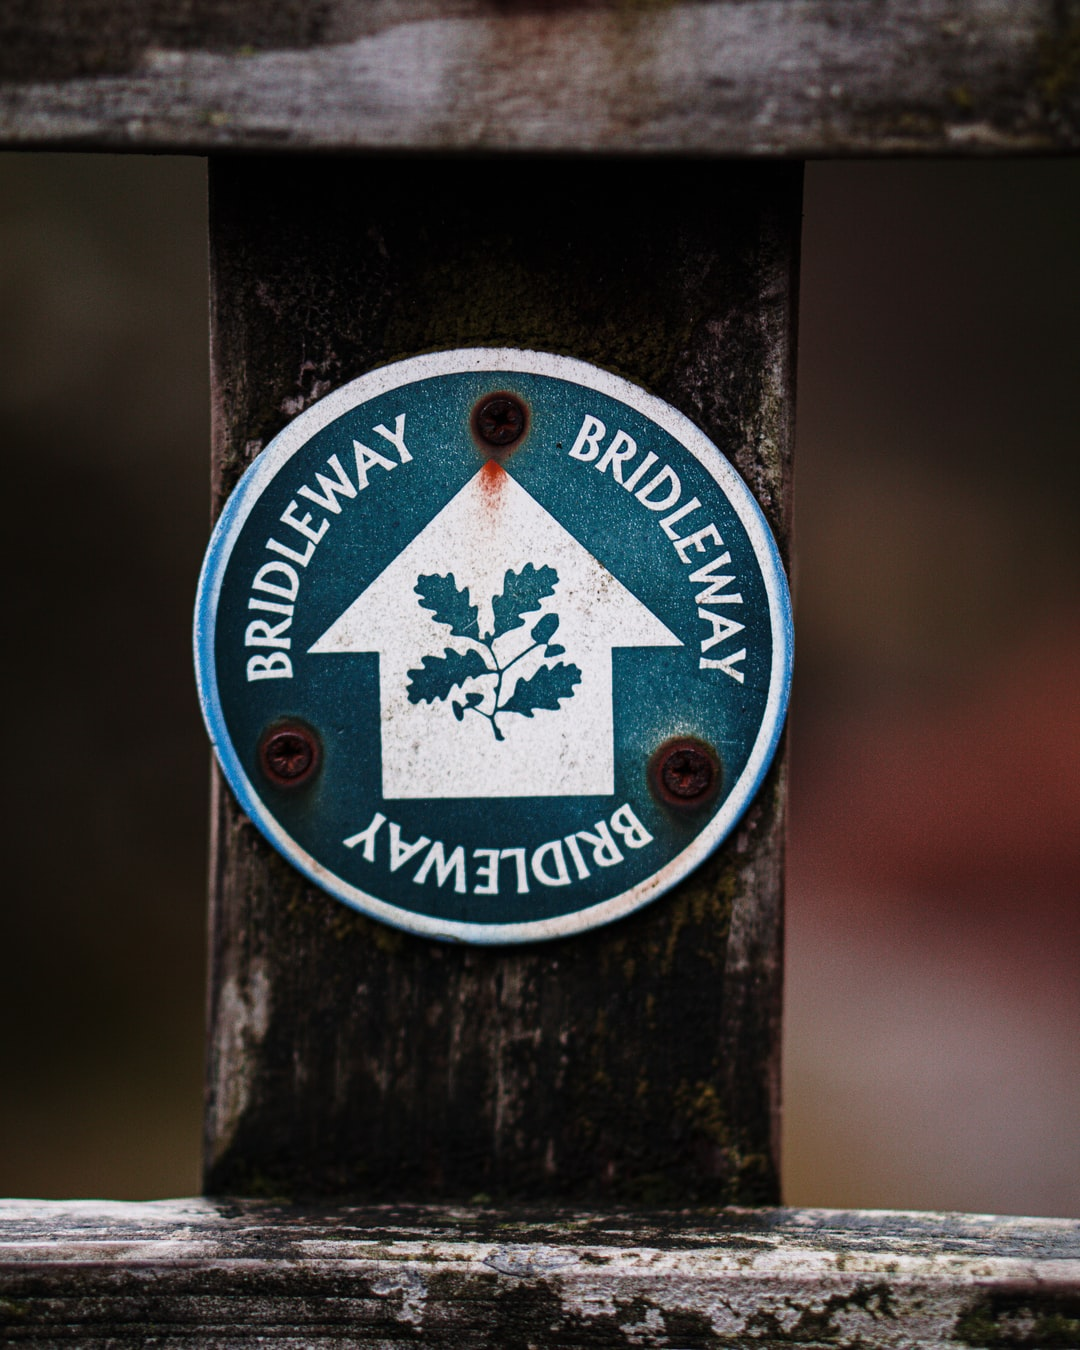 National Trust bridleway path marker for hiking and trails.